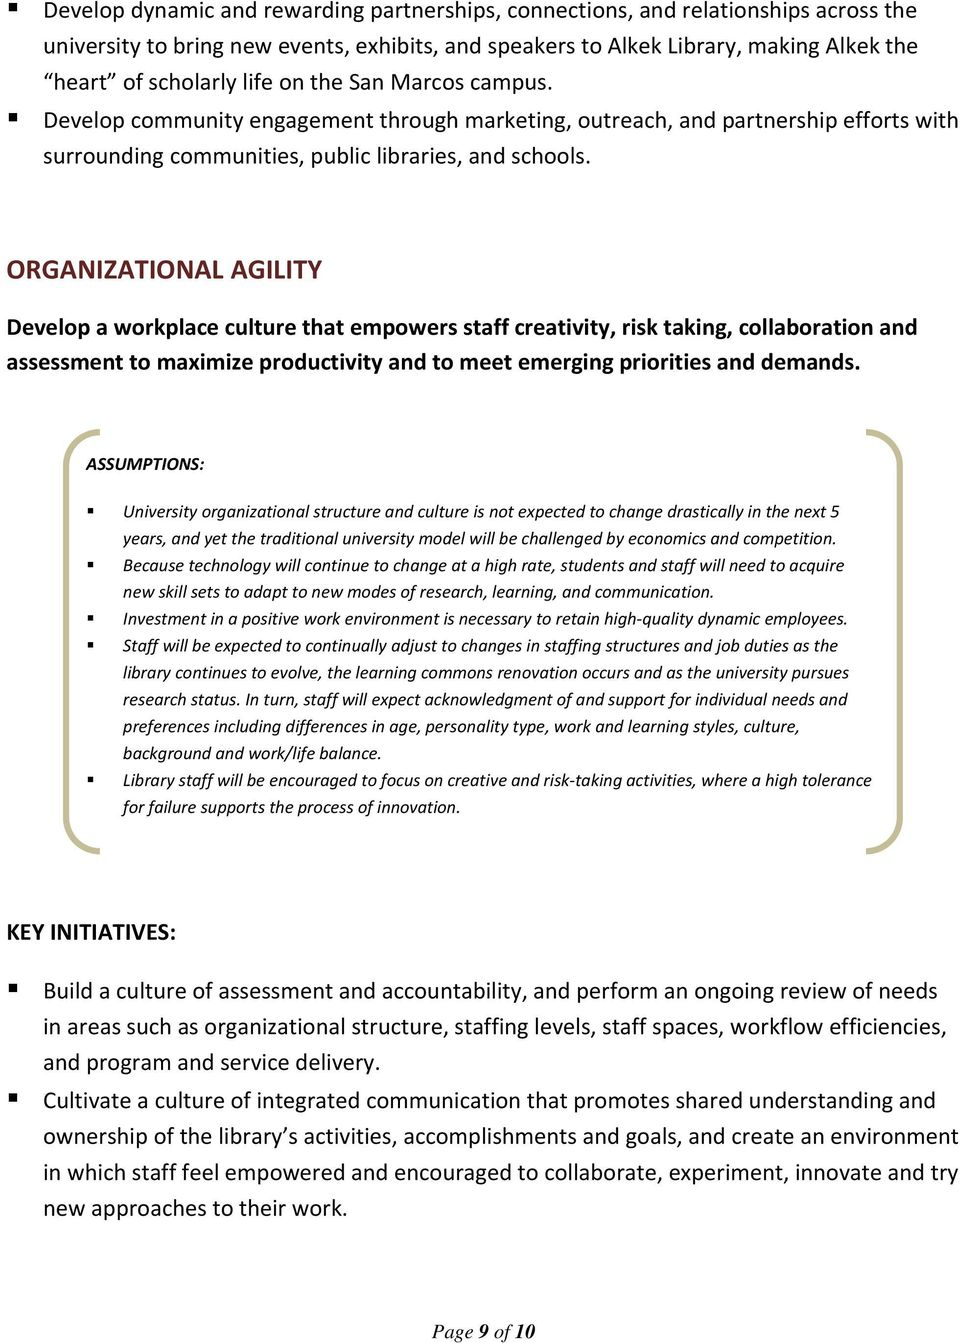 ORGANIZATIONAL AGILITY Develop a workplace culture that empowers staff creativity, risk taking, collaboration and assessment to maximize productivity and to meet emerging priorities and demands.